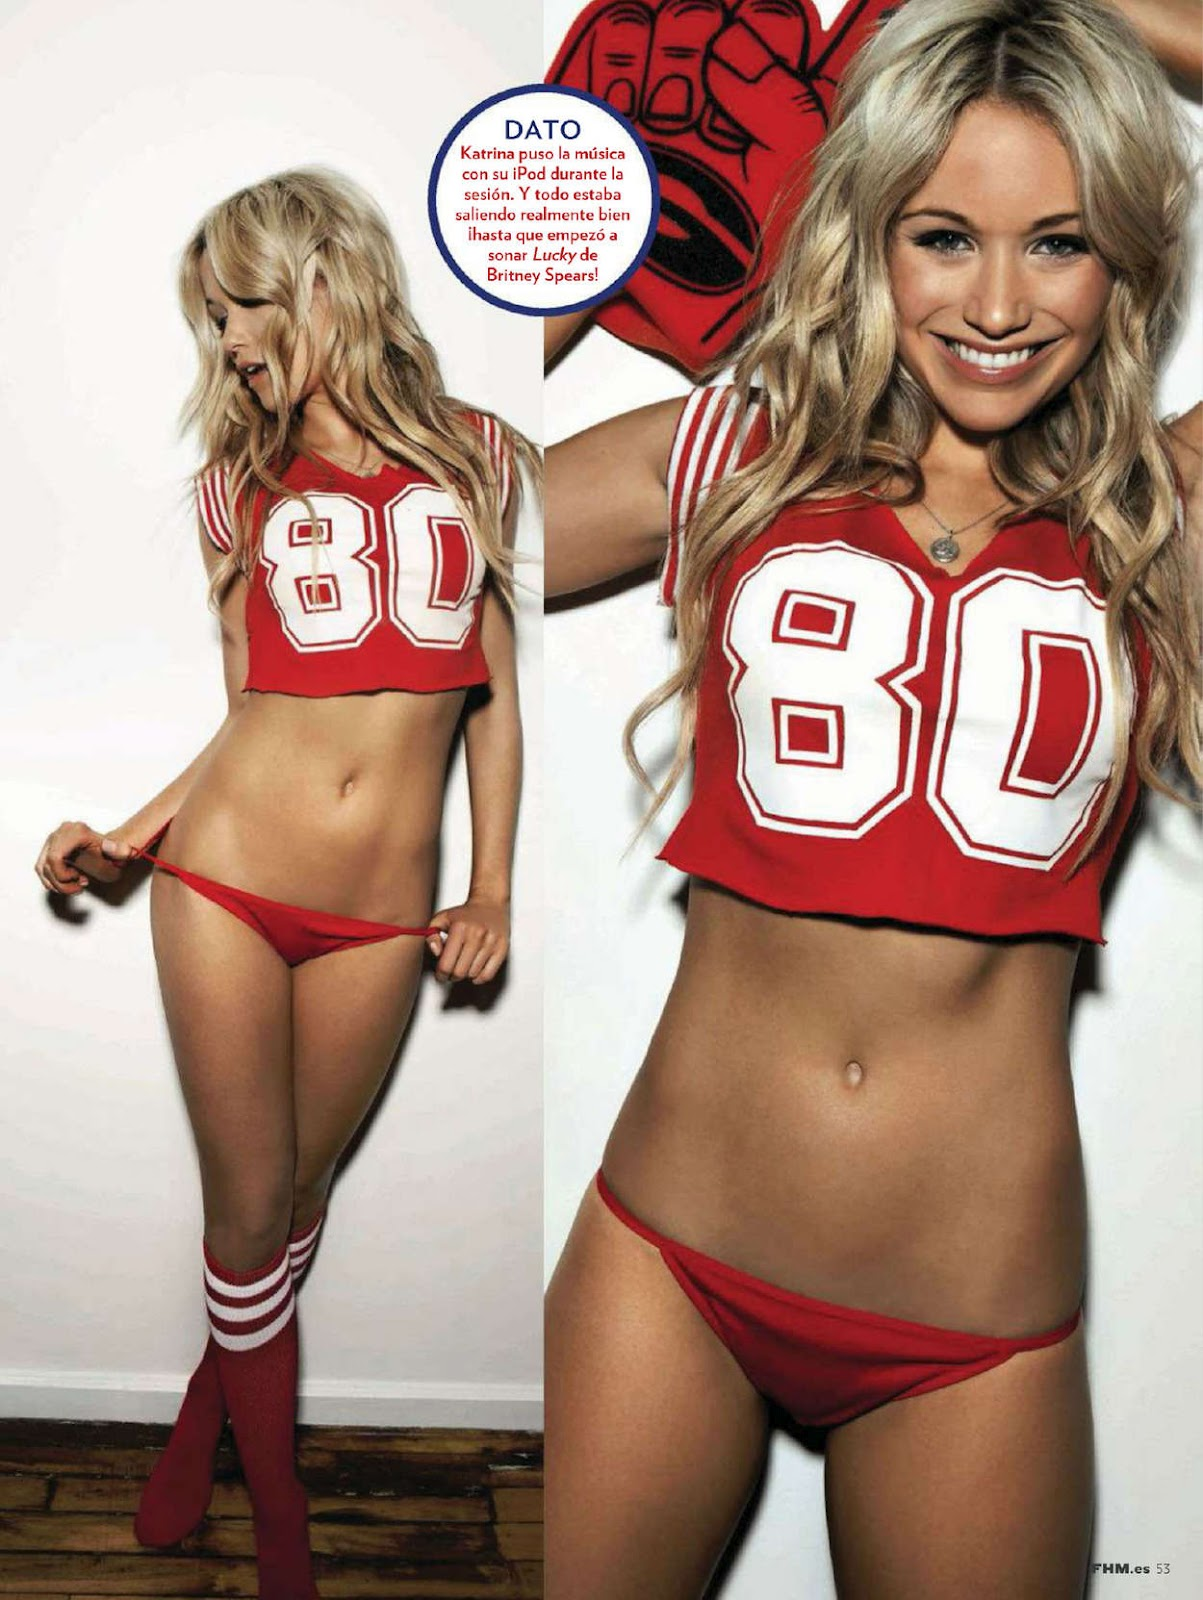 Katrina Bowden on the cover of FHM Magazine Spain, June 2012 issue